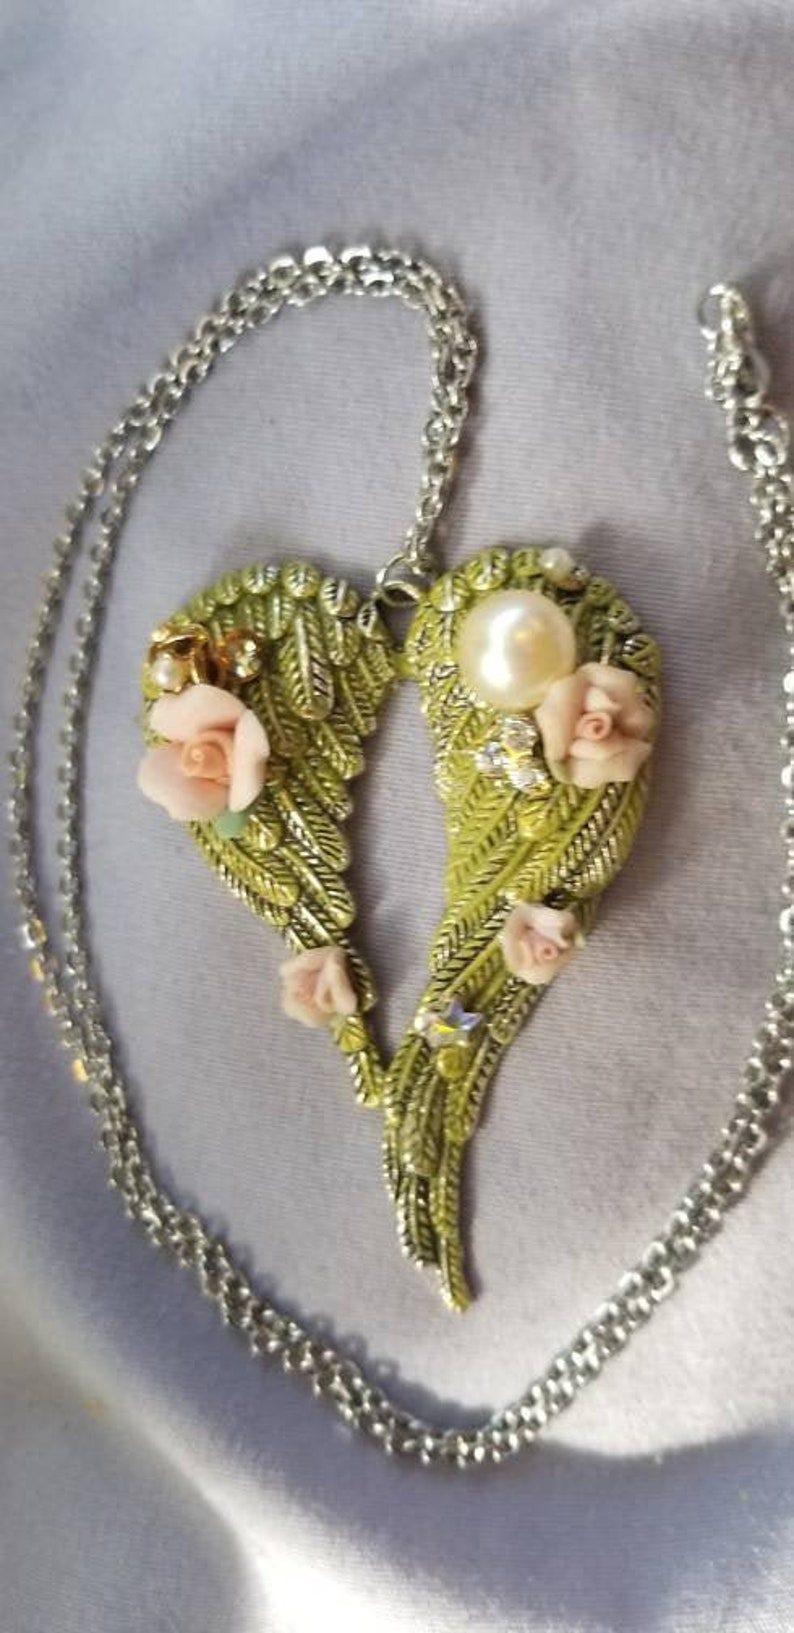 Rhinestone Embellishments Romantic Angel Wings Necklace Pearl Moss Patina Hand Painted Patina Rose Accents Stainless Steel Chain